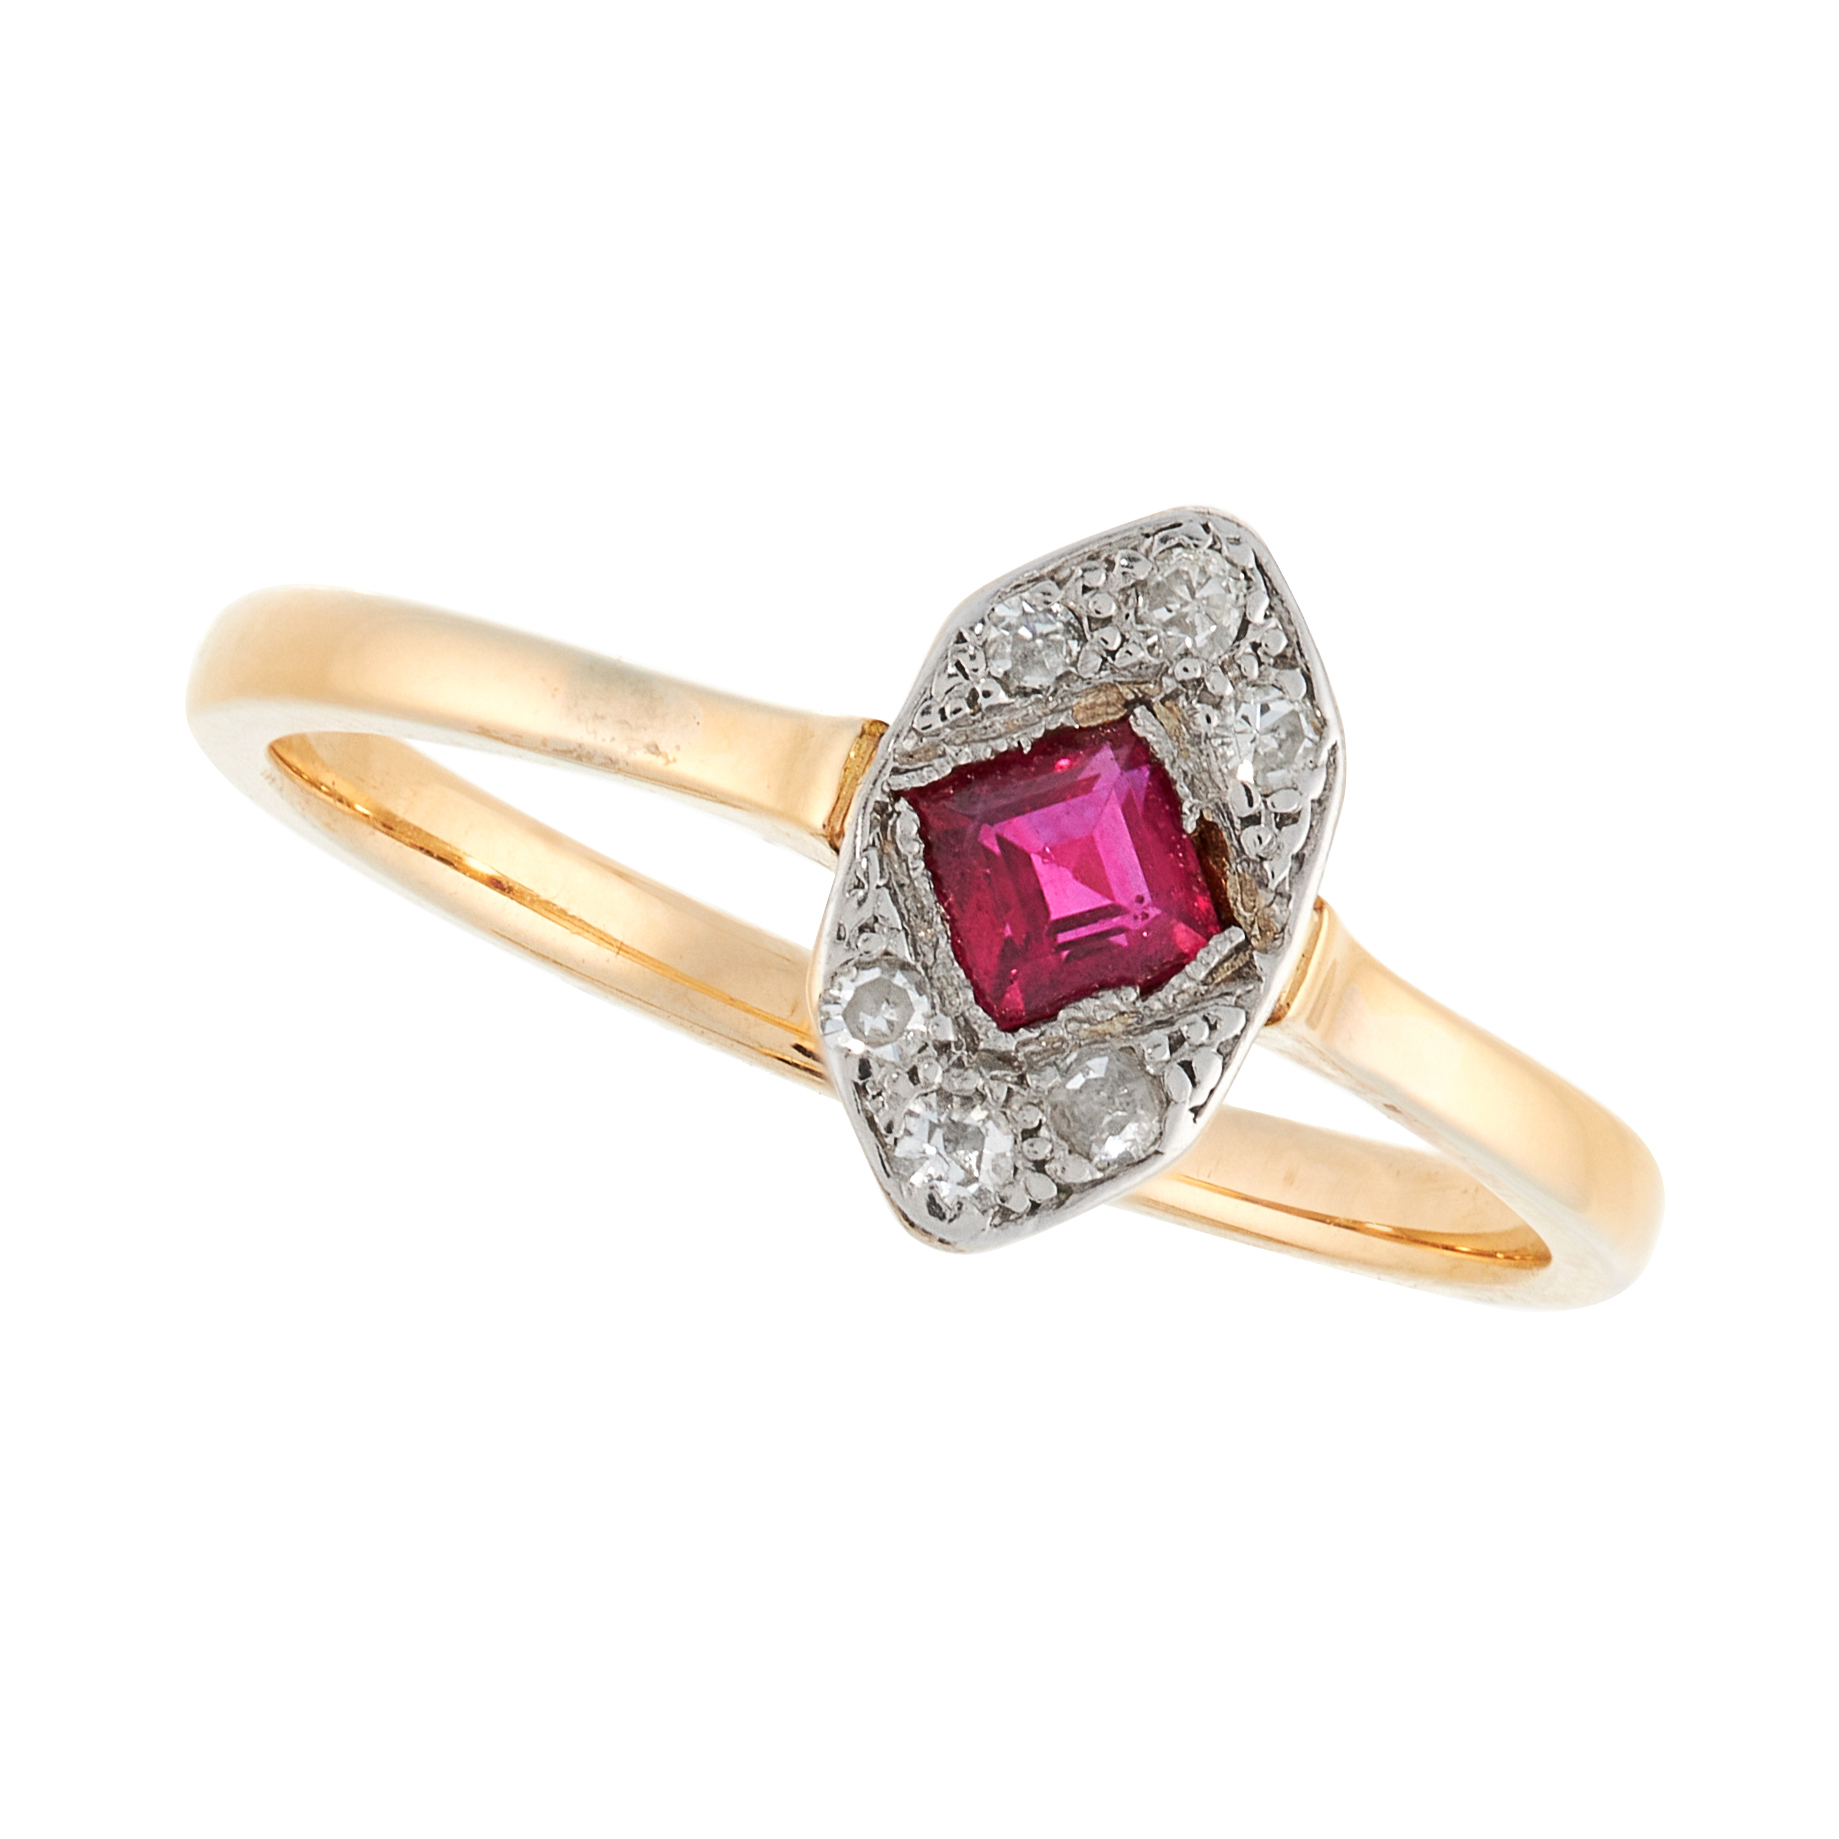 AN ART DECO RUBY AND DIAMOND DRESS RING, EARLY 20TH CENTURY in yellow gold, set with a step cut ruby